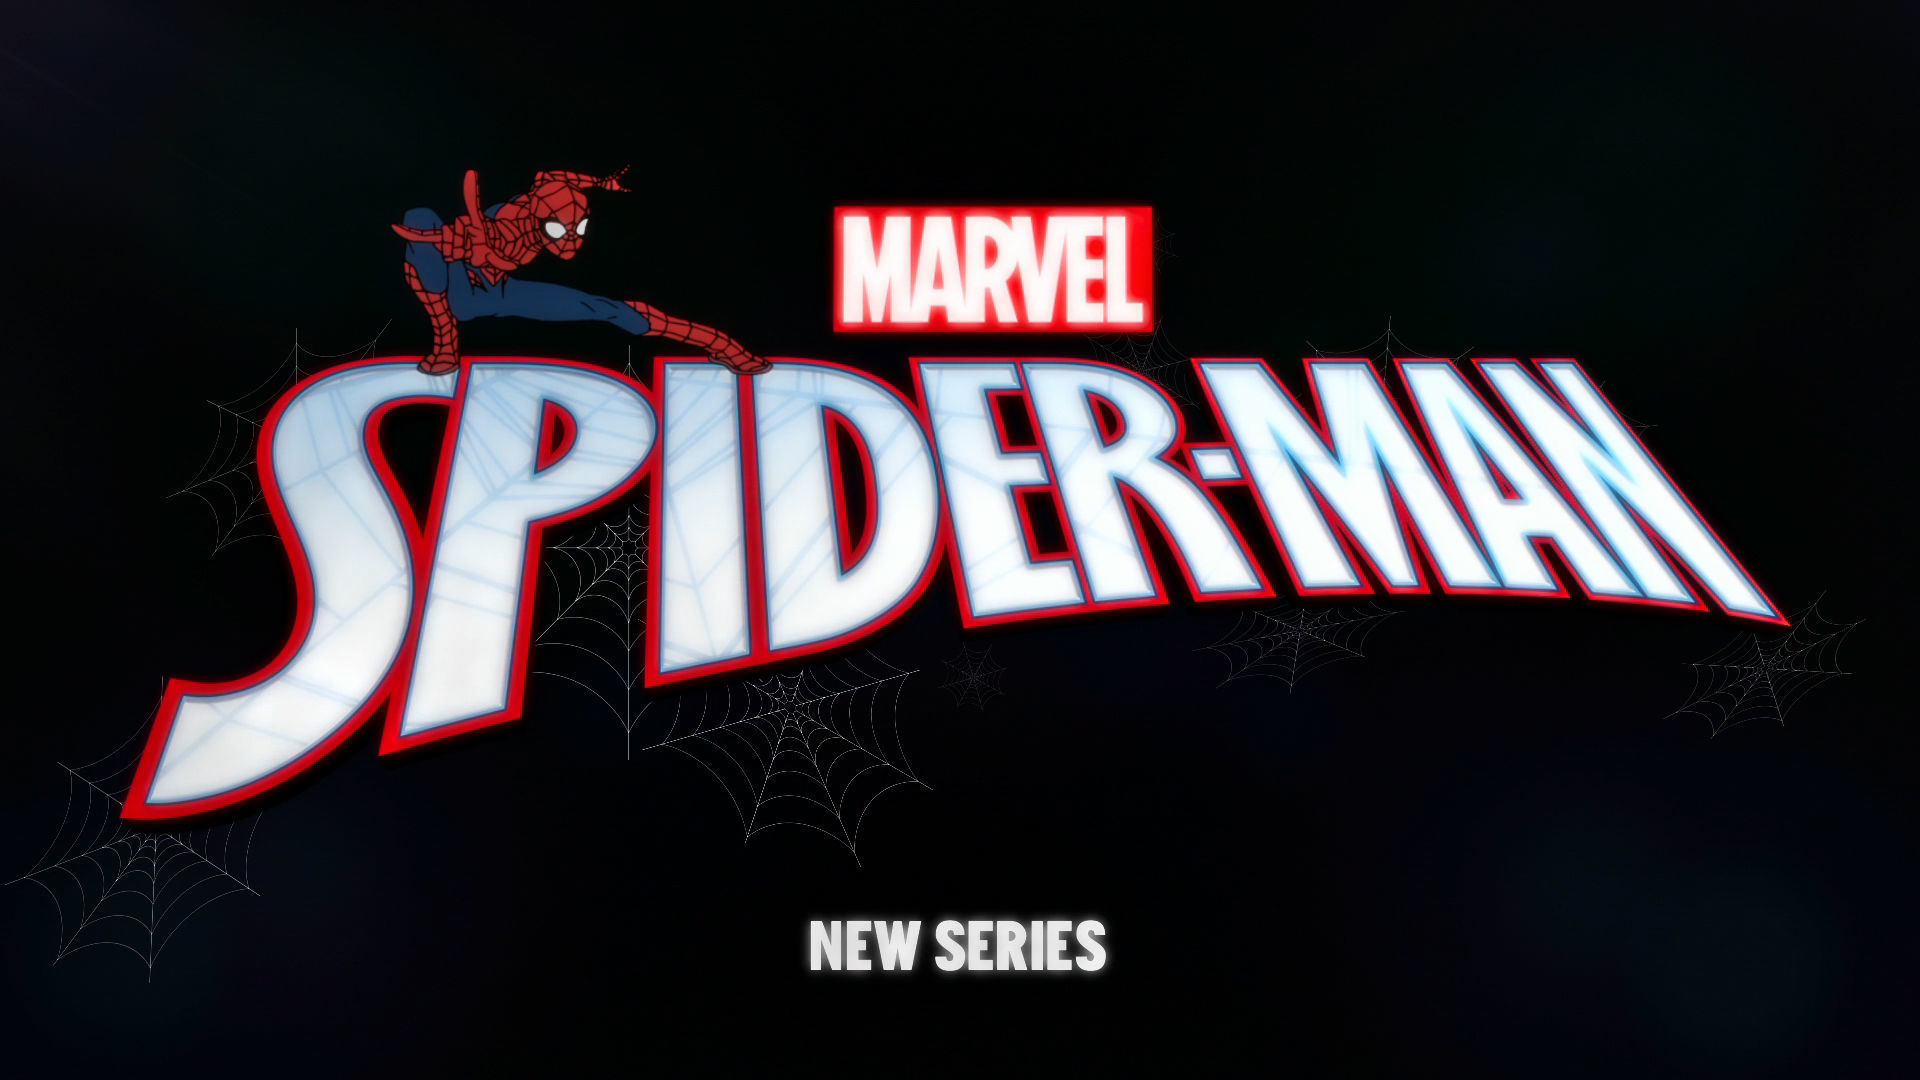 Marvel Spider-Man: Series Teaser